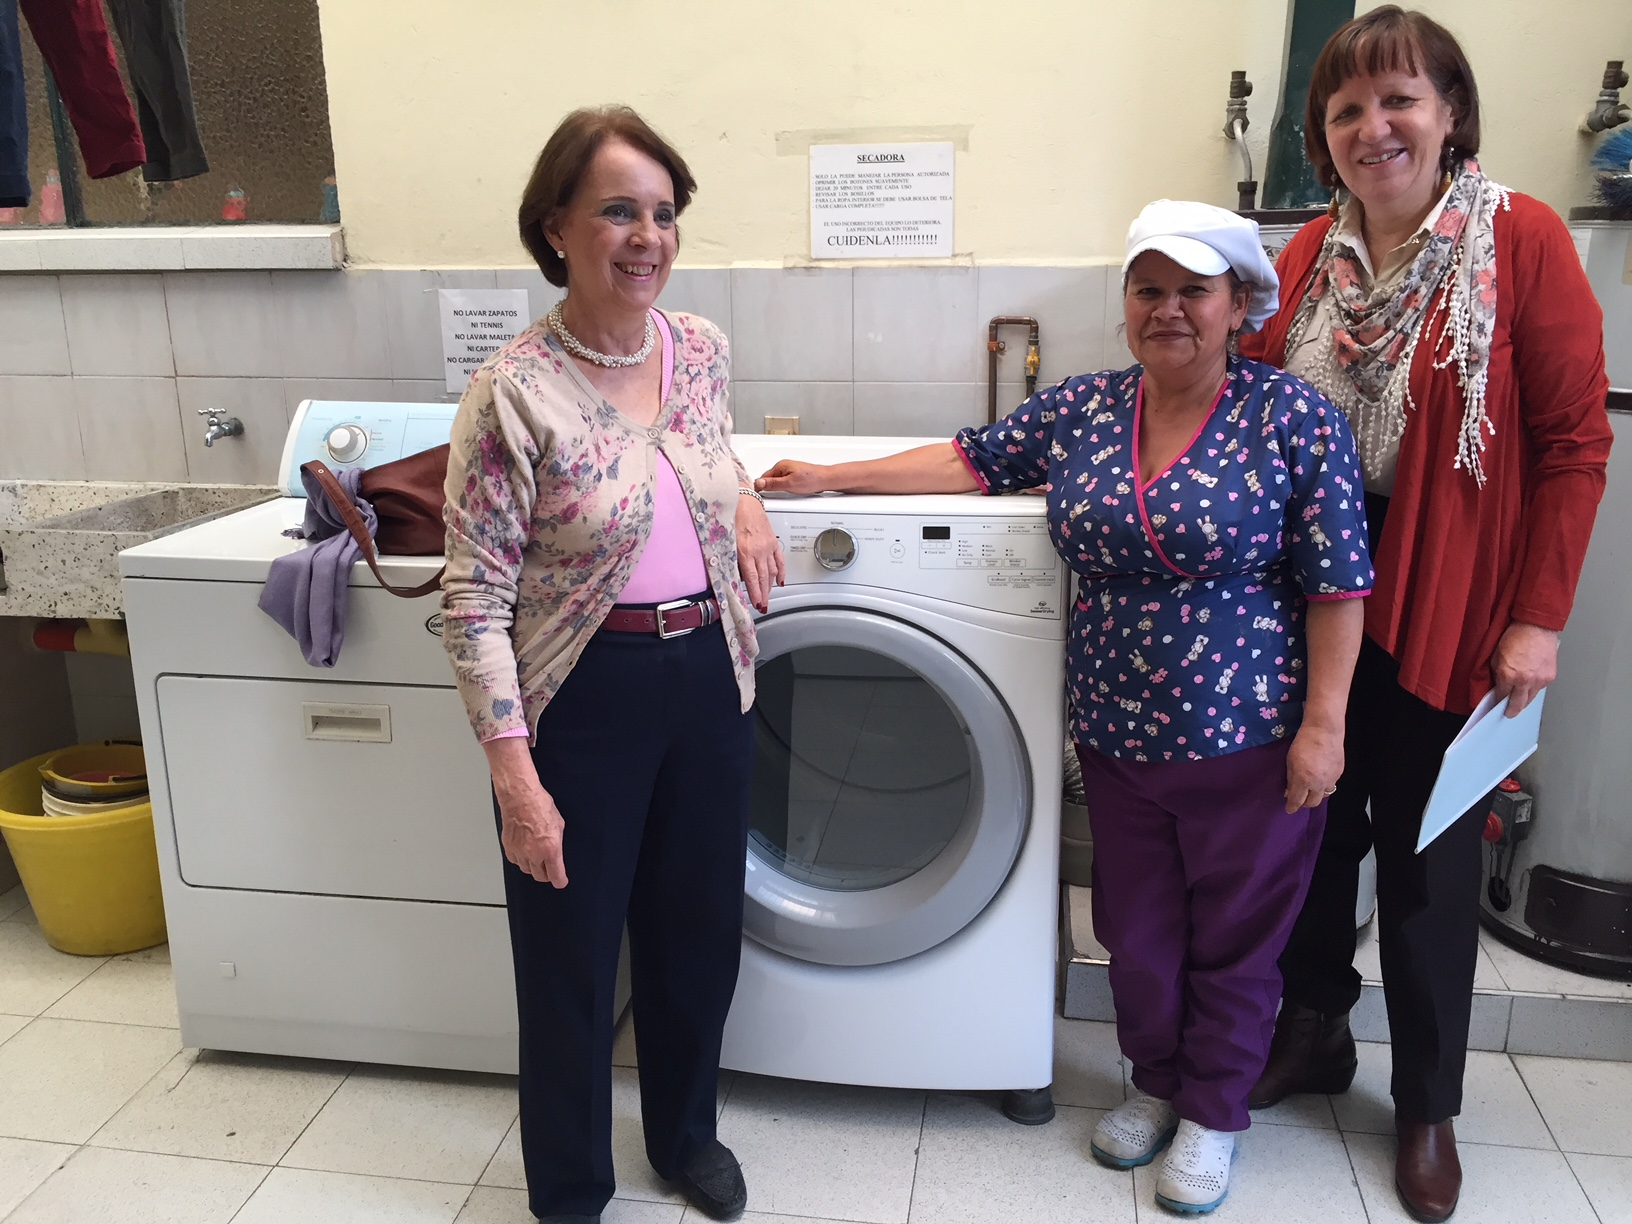 A Whirlpool washing machine and dryer for the girls personal care.